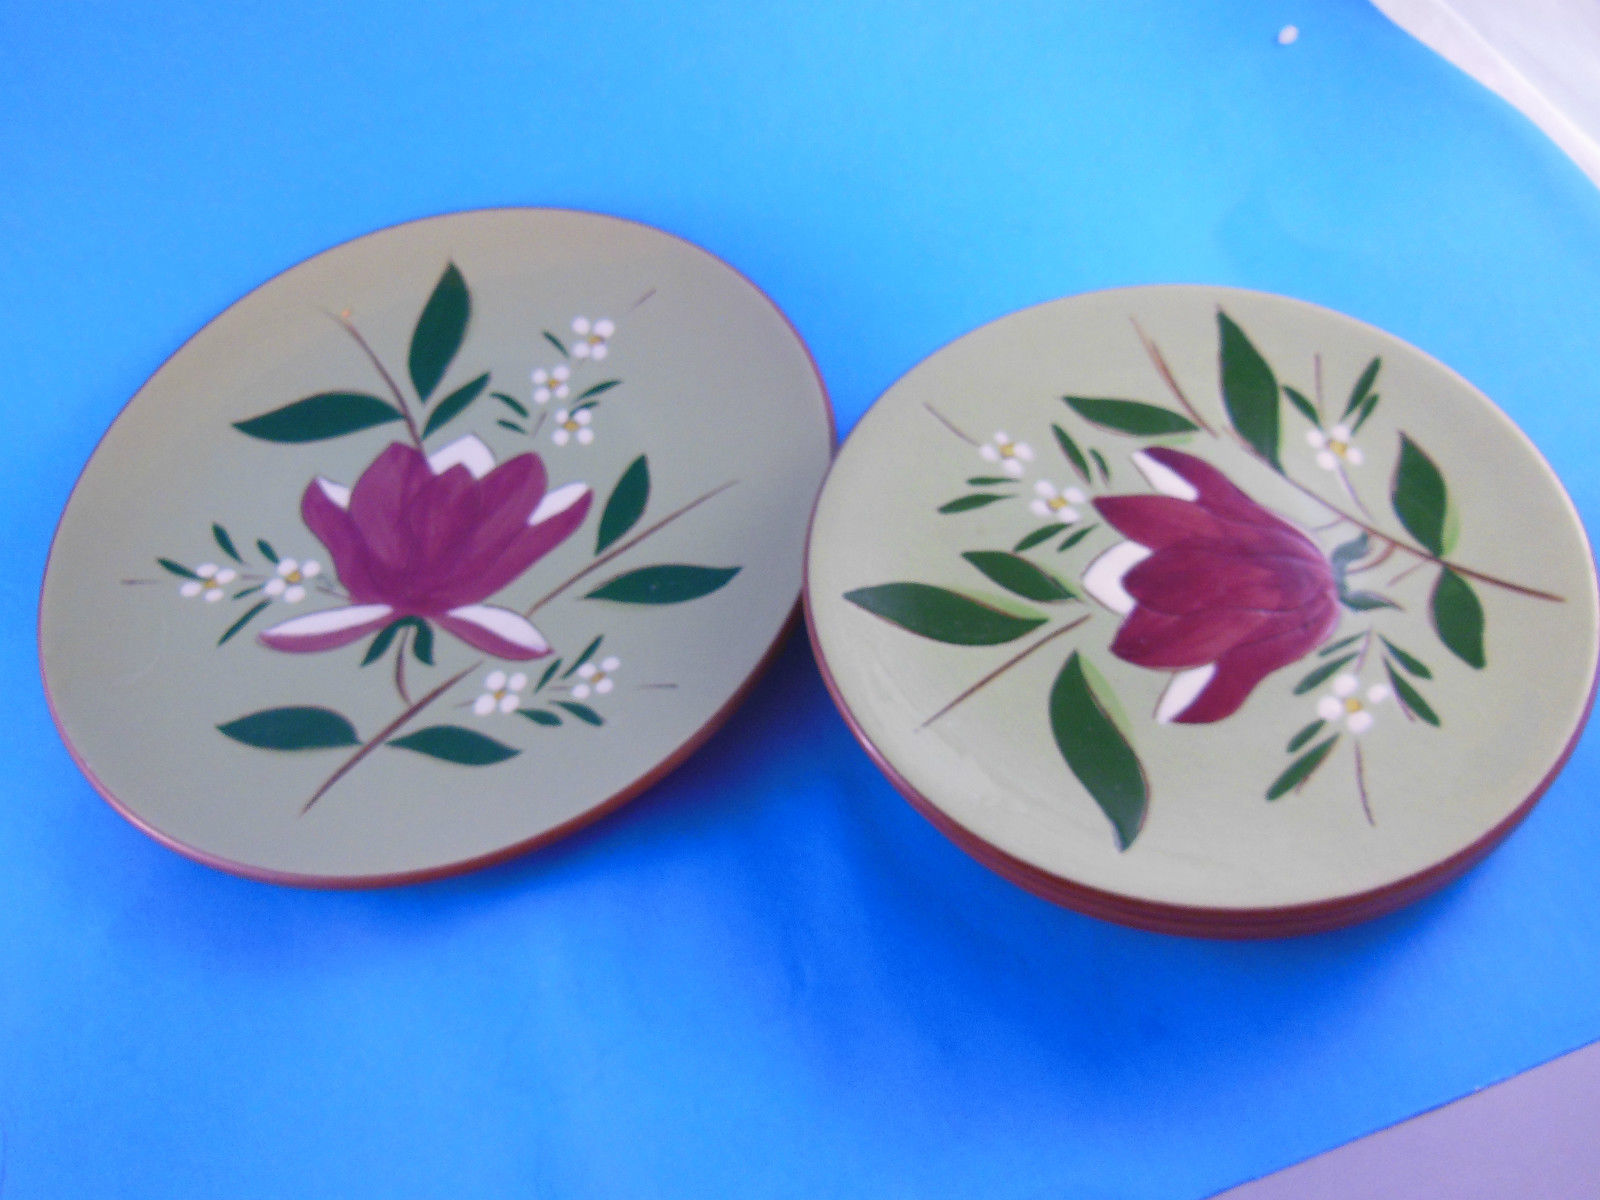 4 Vintage Stangl Pottery Magnolia 4 Plates 1 one 8\  and 3 three 6\  - $11.87 & Stangl Pottery Plates: 3 listings